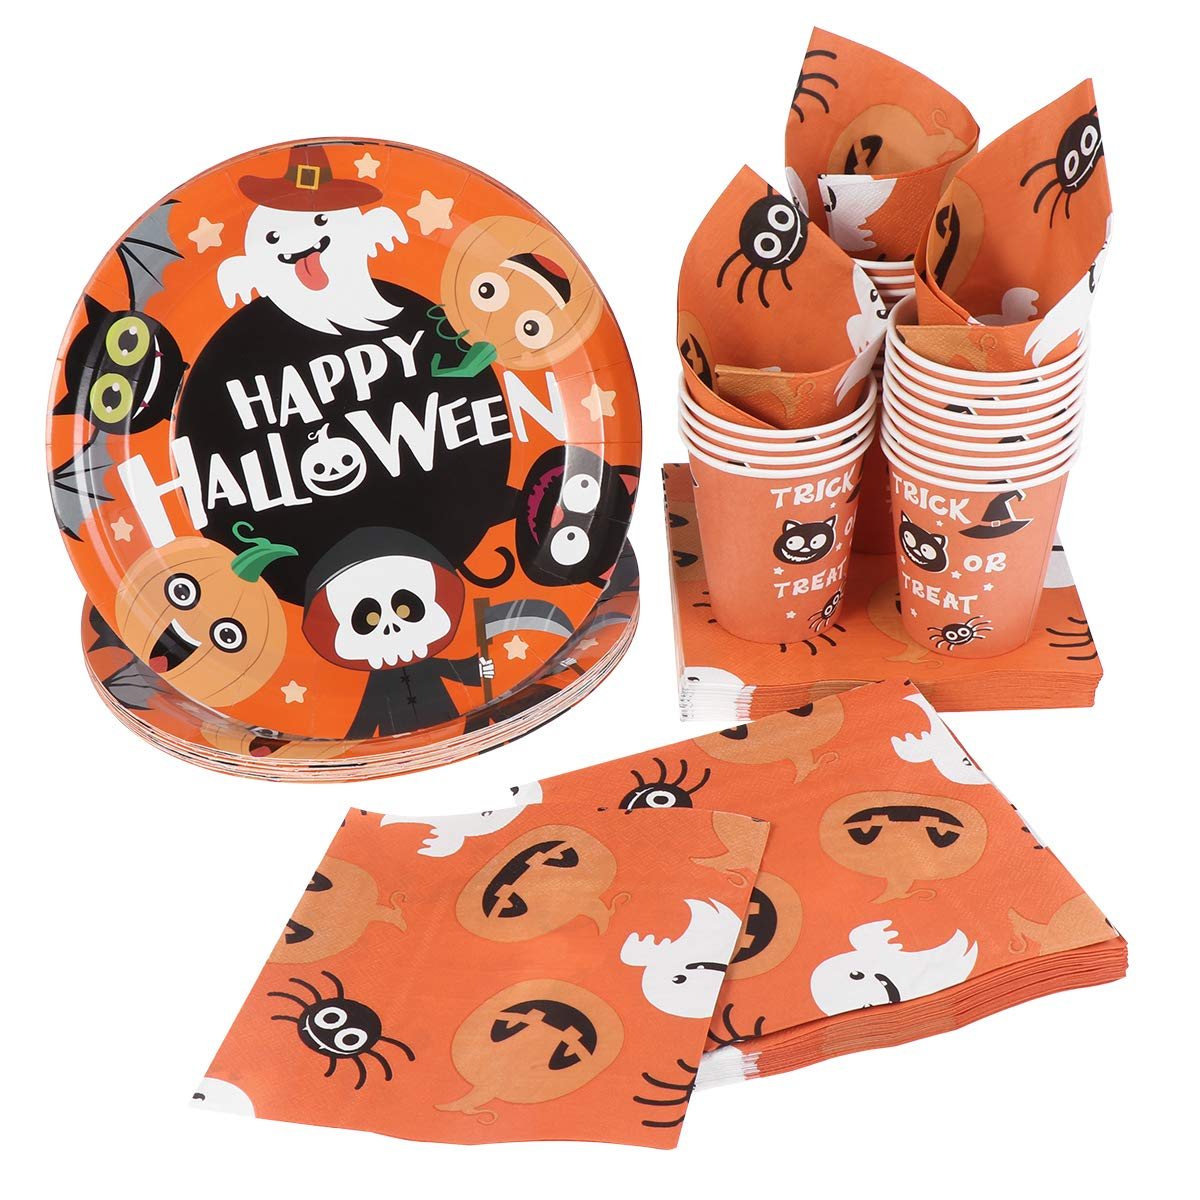 Hemoton Paper Tableware set for Halloween Nightmare Party Supplies with 24pcs Plates 24pcs Cups and 48pcs Napkins by Hemoton